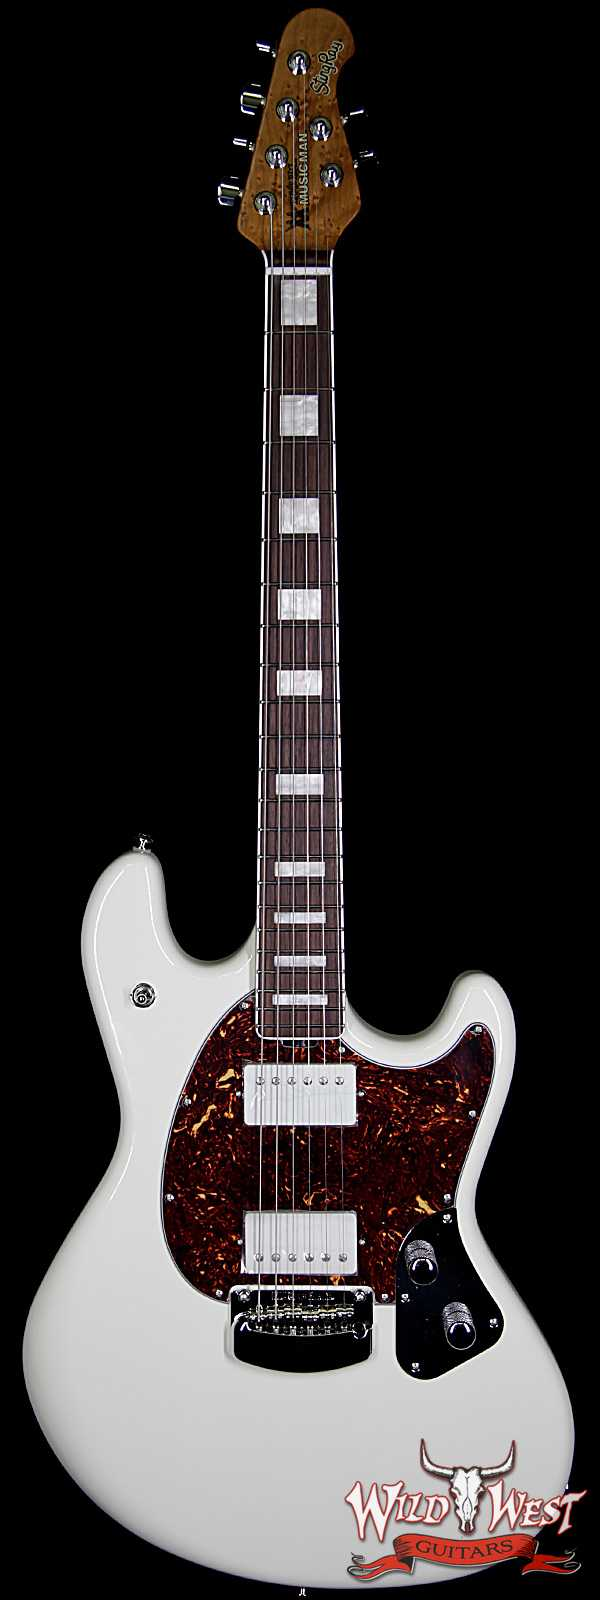 Ernie Ball Music Man BFR Limited Edition # 28 of 39 Stingray HH Guitar Roasted Birdseye Maple Neck White Smoke